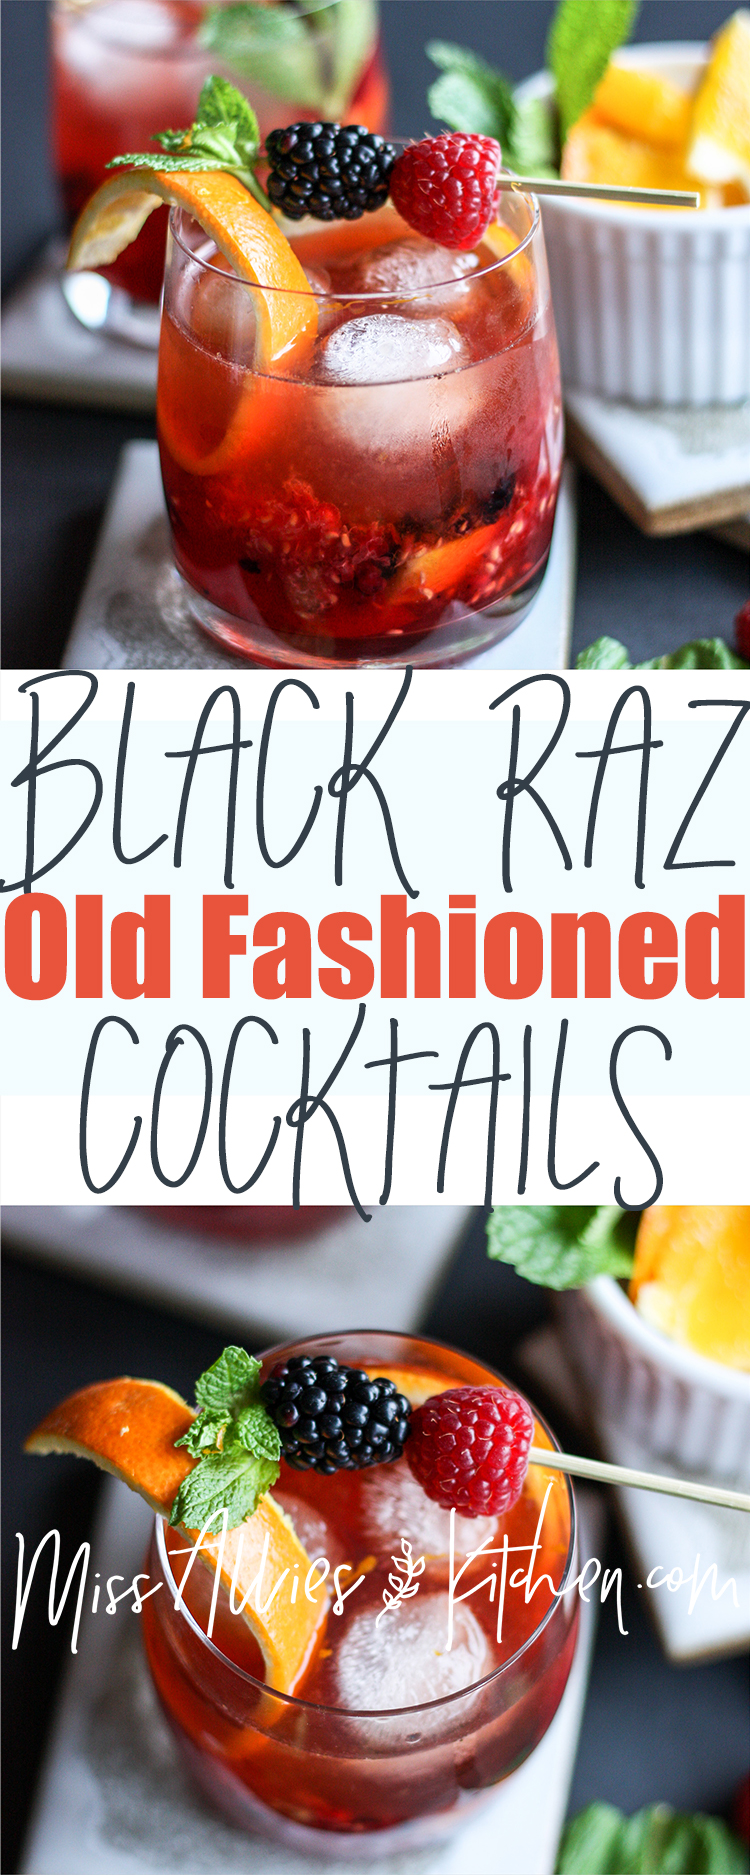 Black Raz Old Fashioned Cocktails